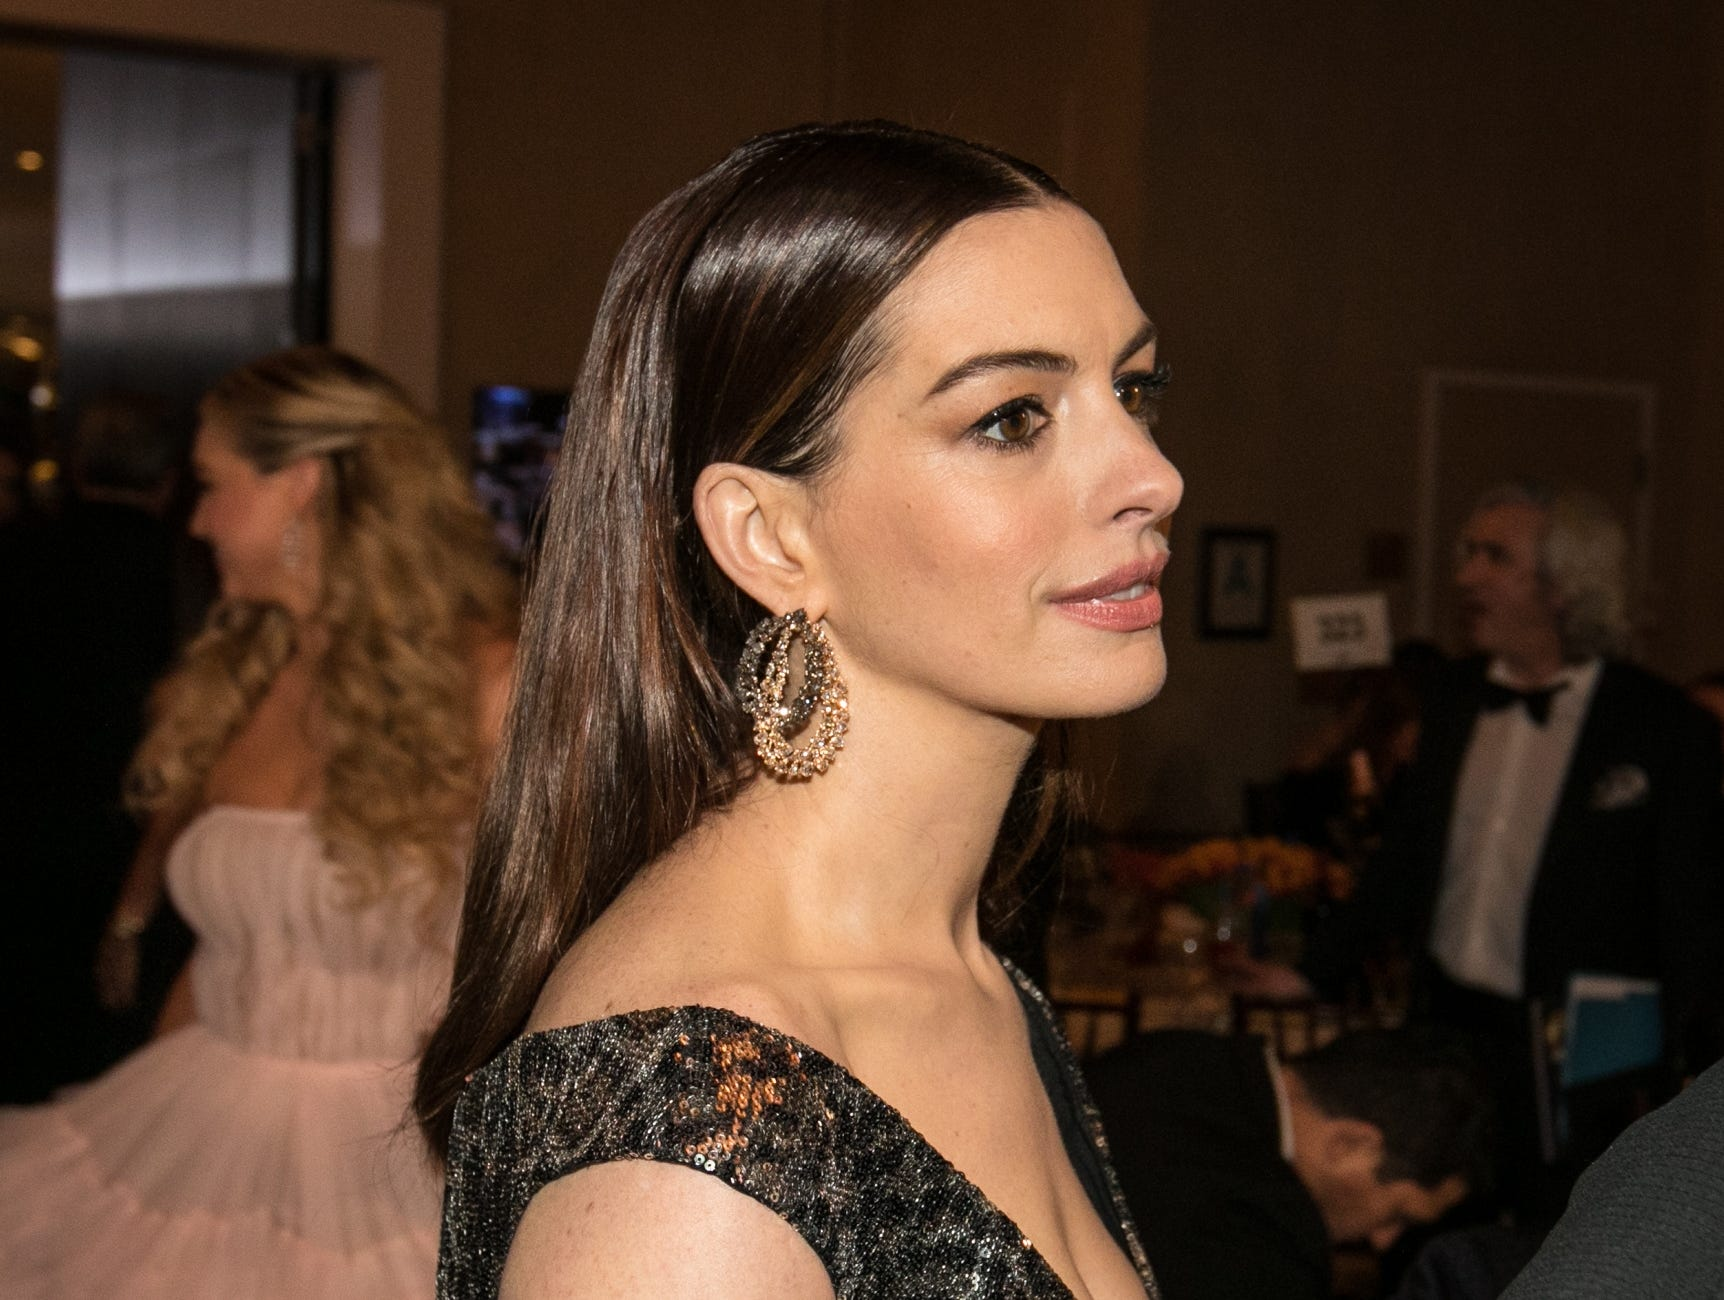 """Ocean's 8"" star Anne Hathaway has a moment alone before the telecast starts."